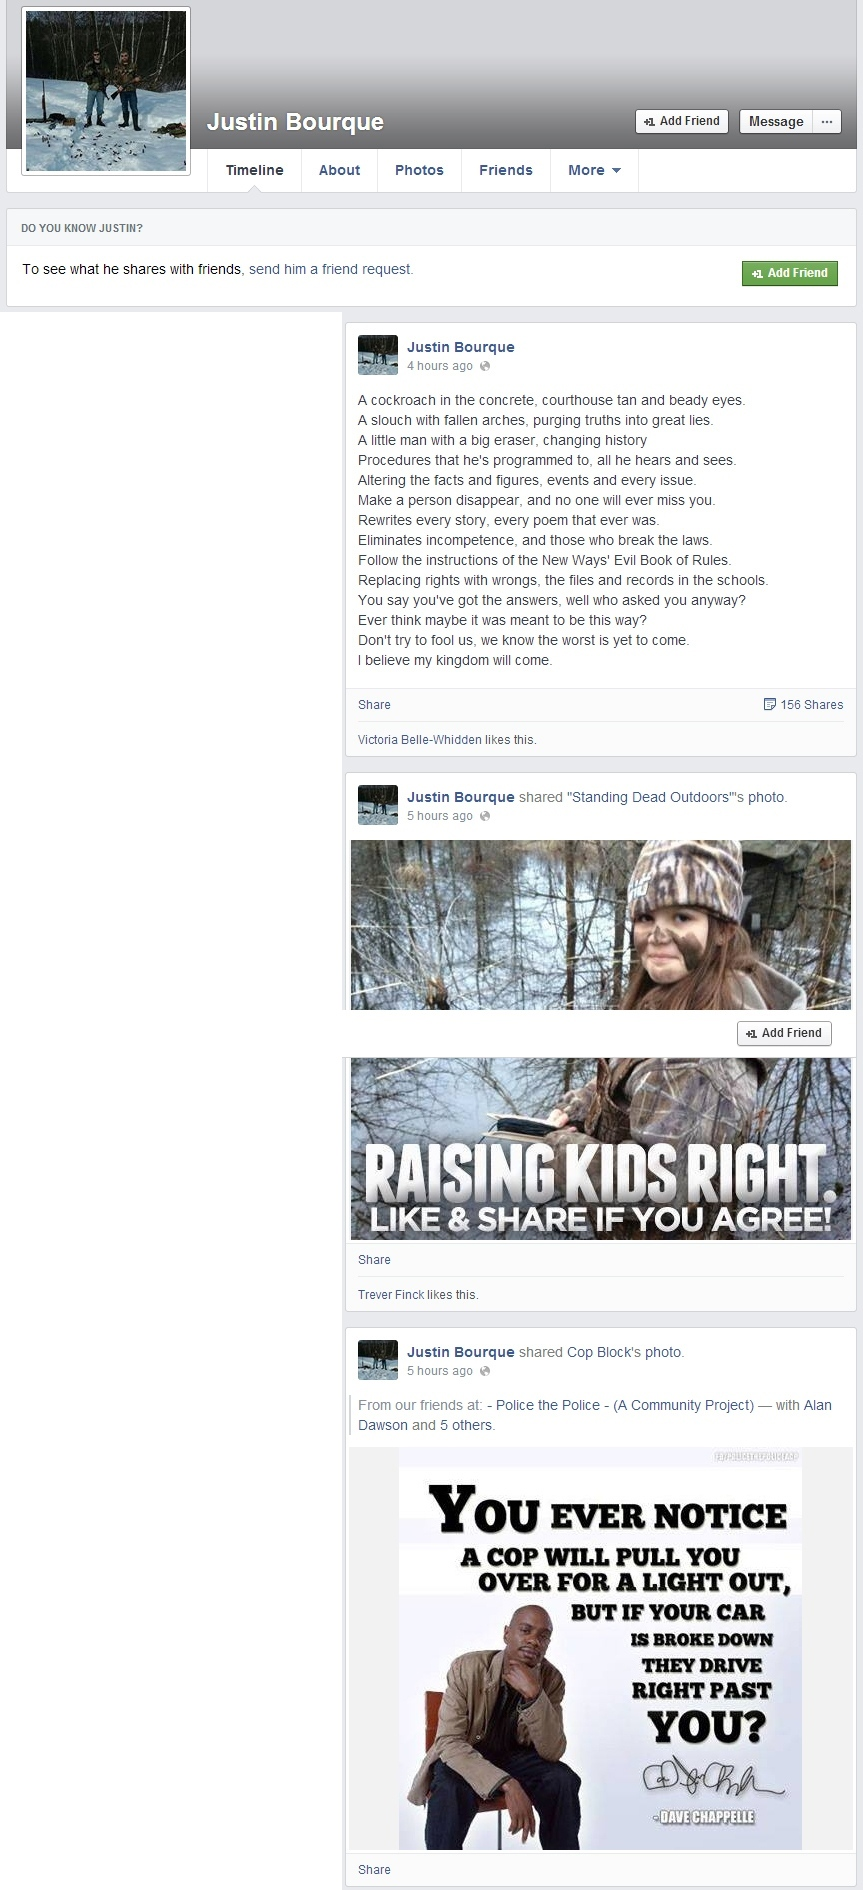 An active Facebook page that appears to belong to a Justin Bourque in Moncton, N.B. features several pro-gun and anti-police photos and rants